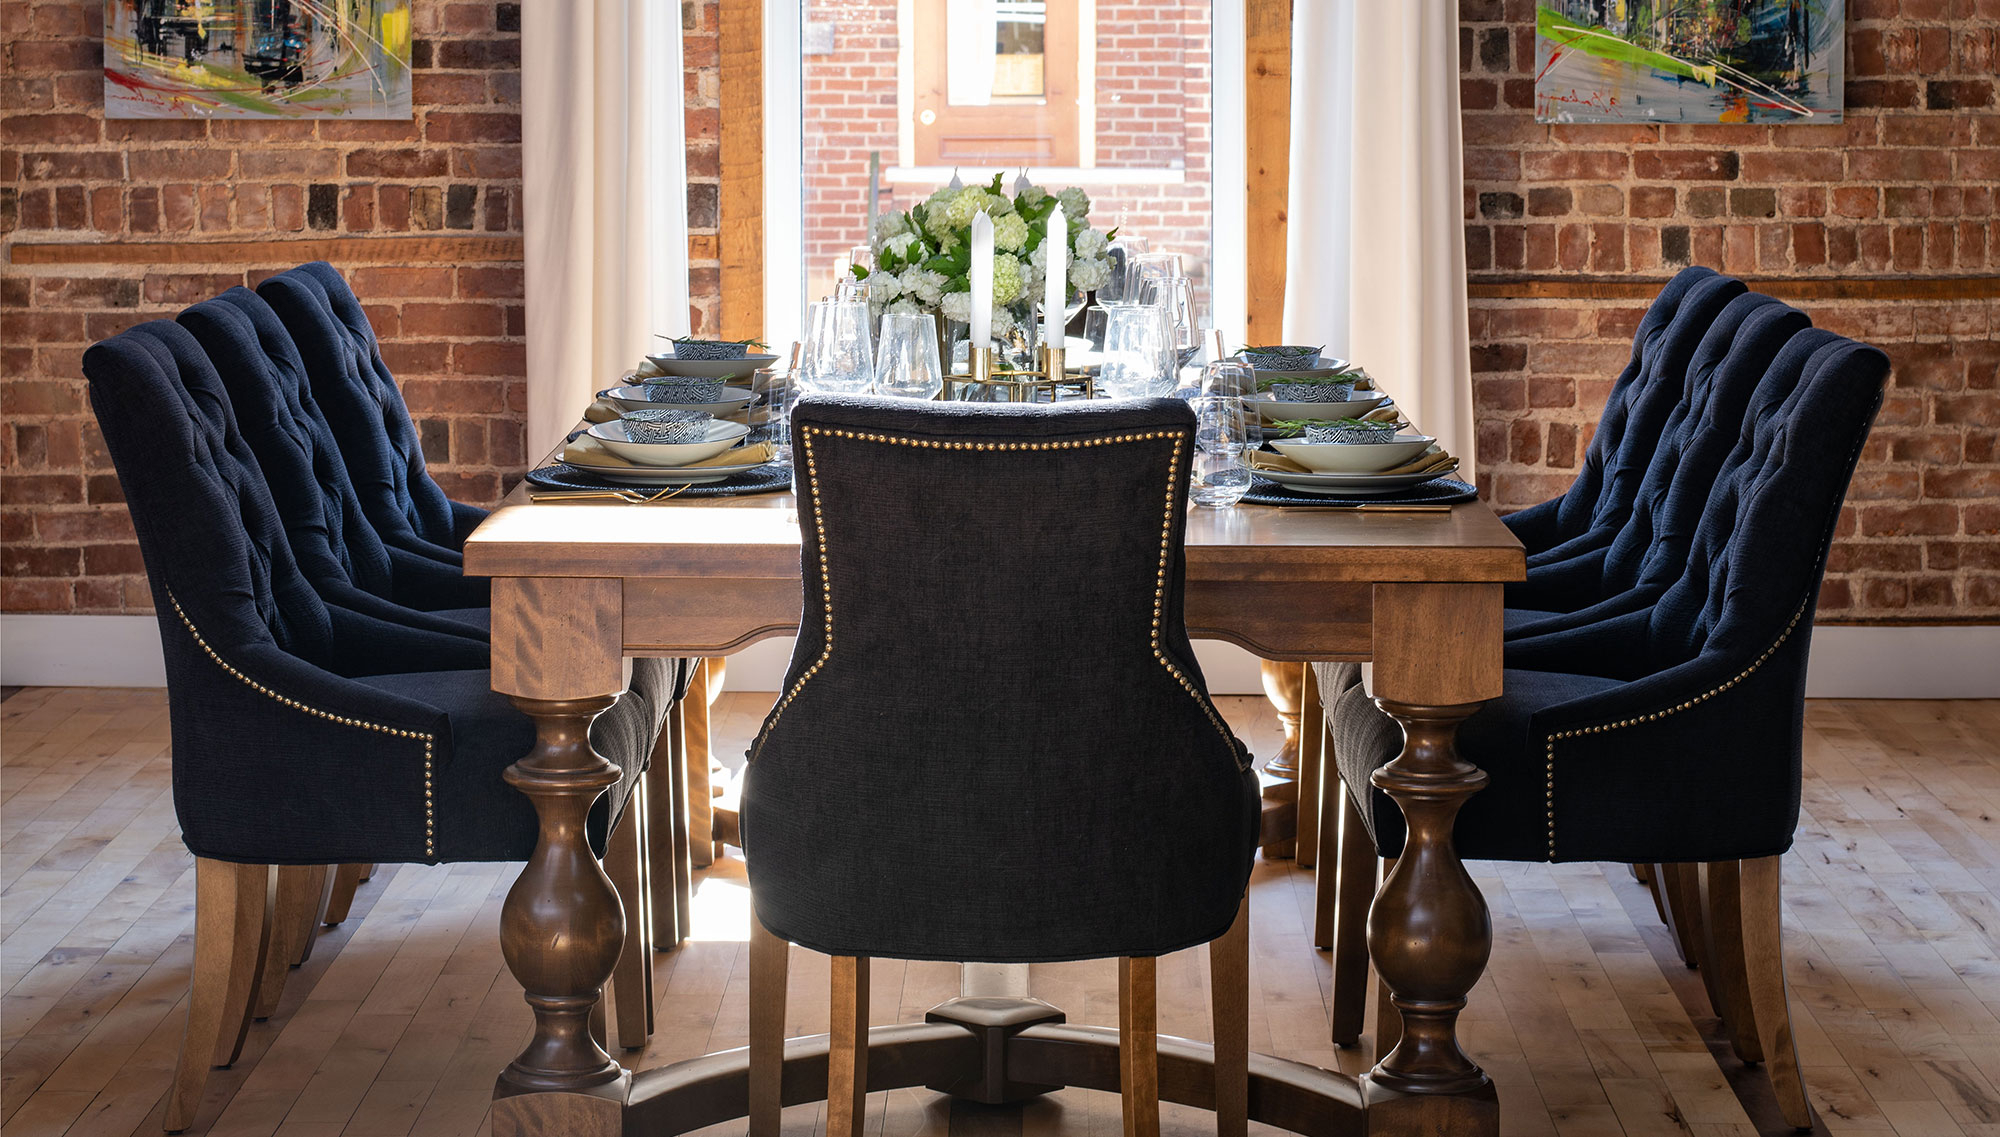 Recent Rustic Country 8-Seating Casual Dining Tables intended for Handcrafted In North America - Kitchen And Dining Room - Canadel